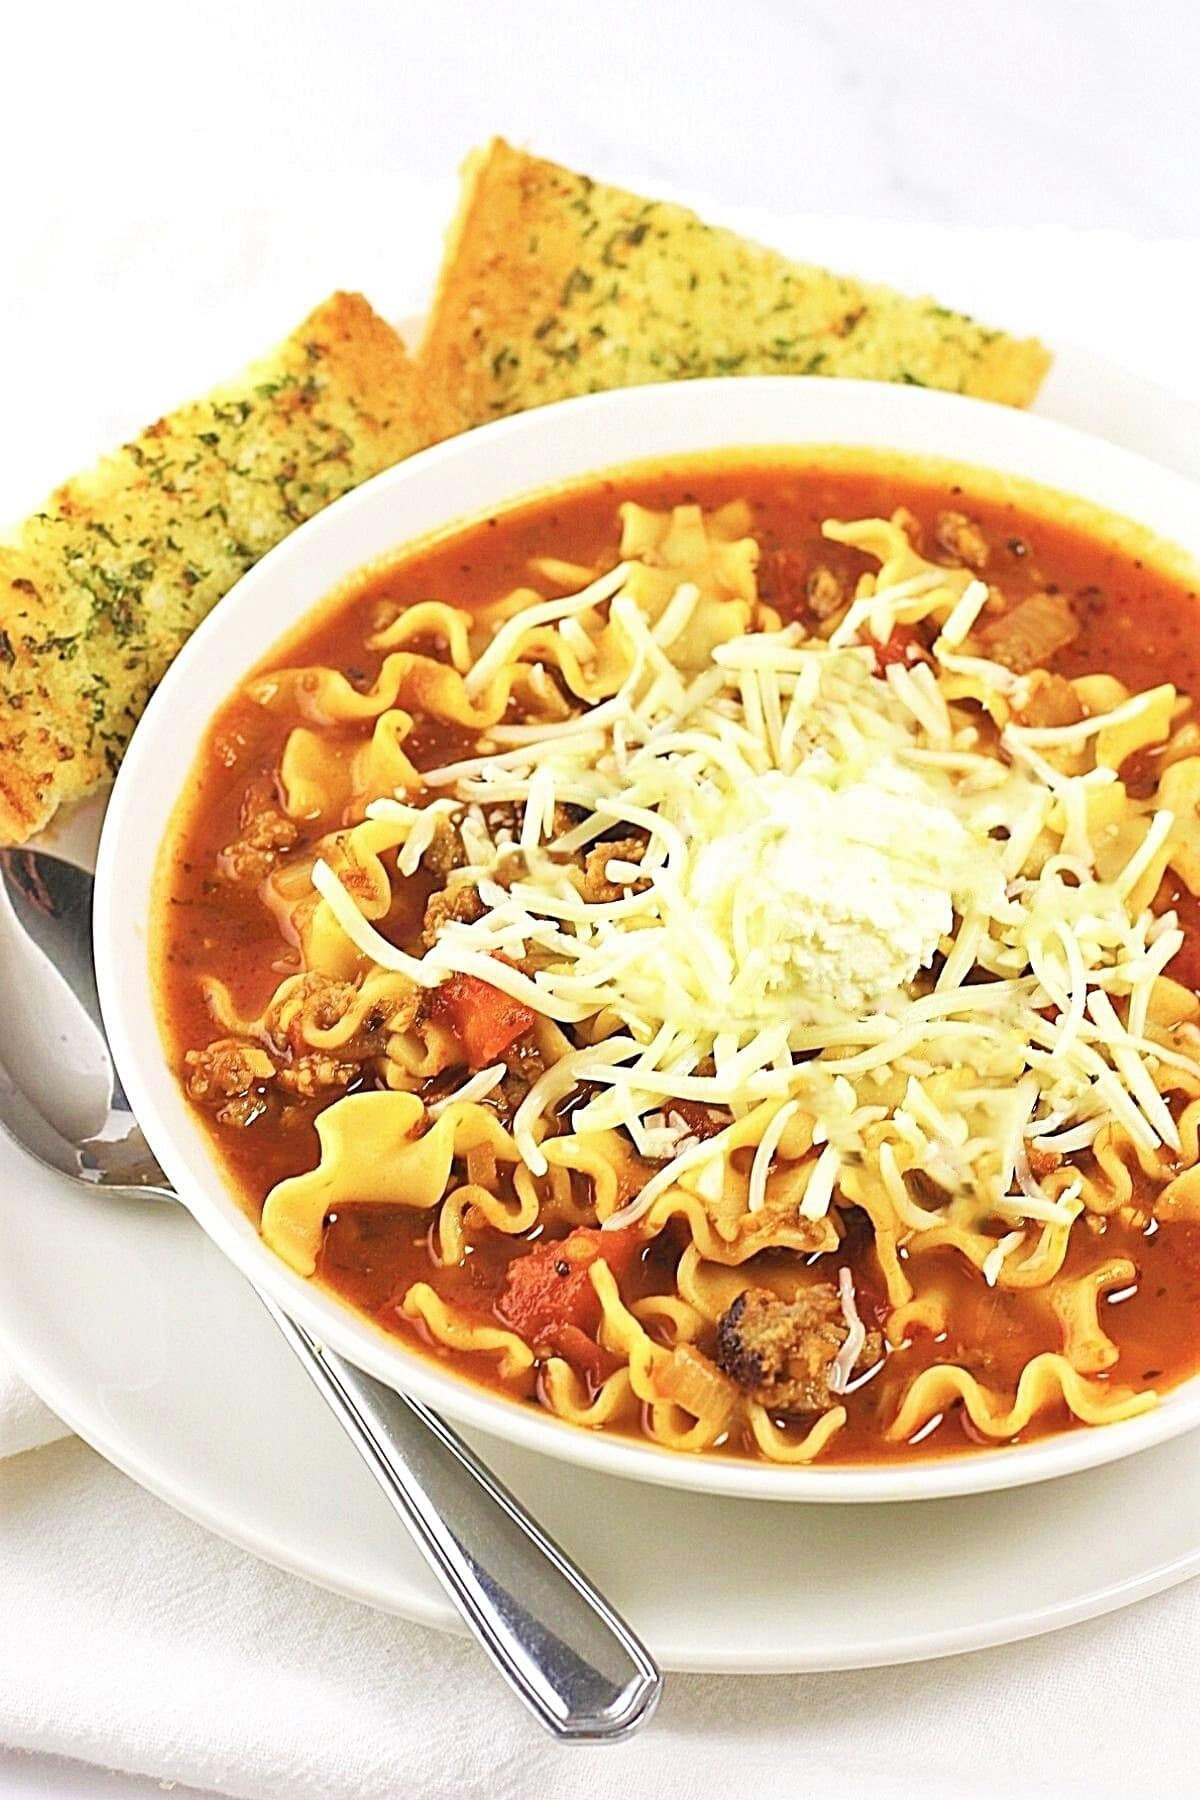 bowl of easy lasagna soup on a plate with a spoon and slices of garlic bread on the side